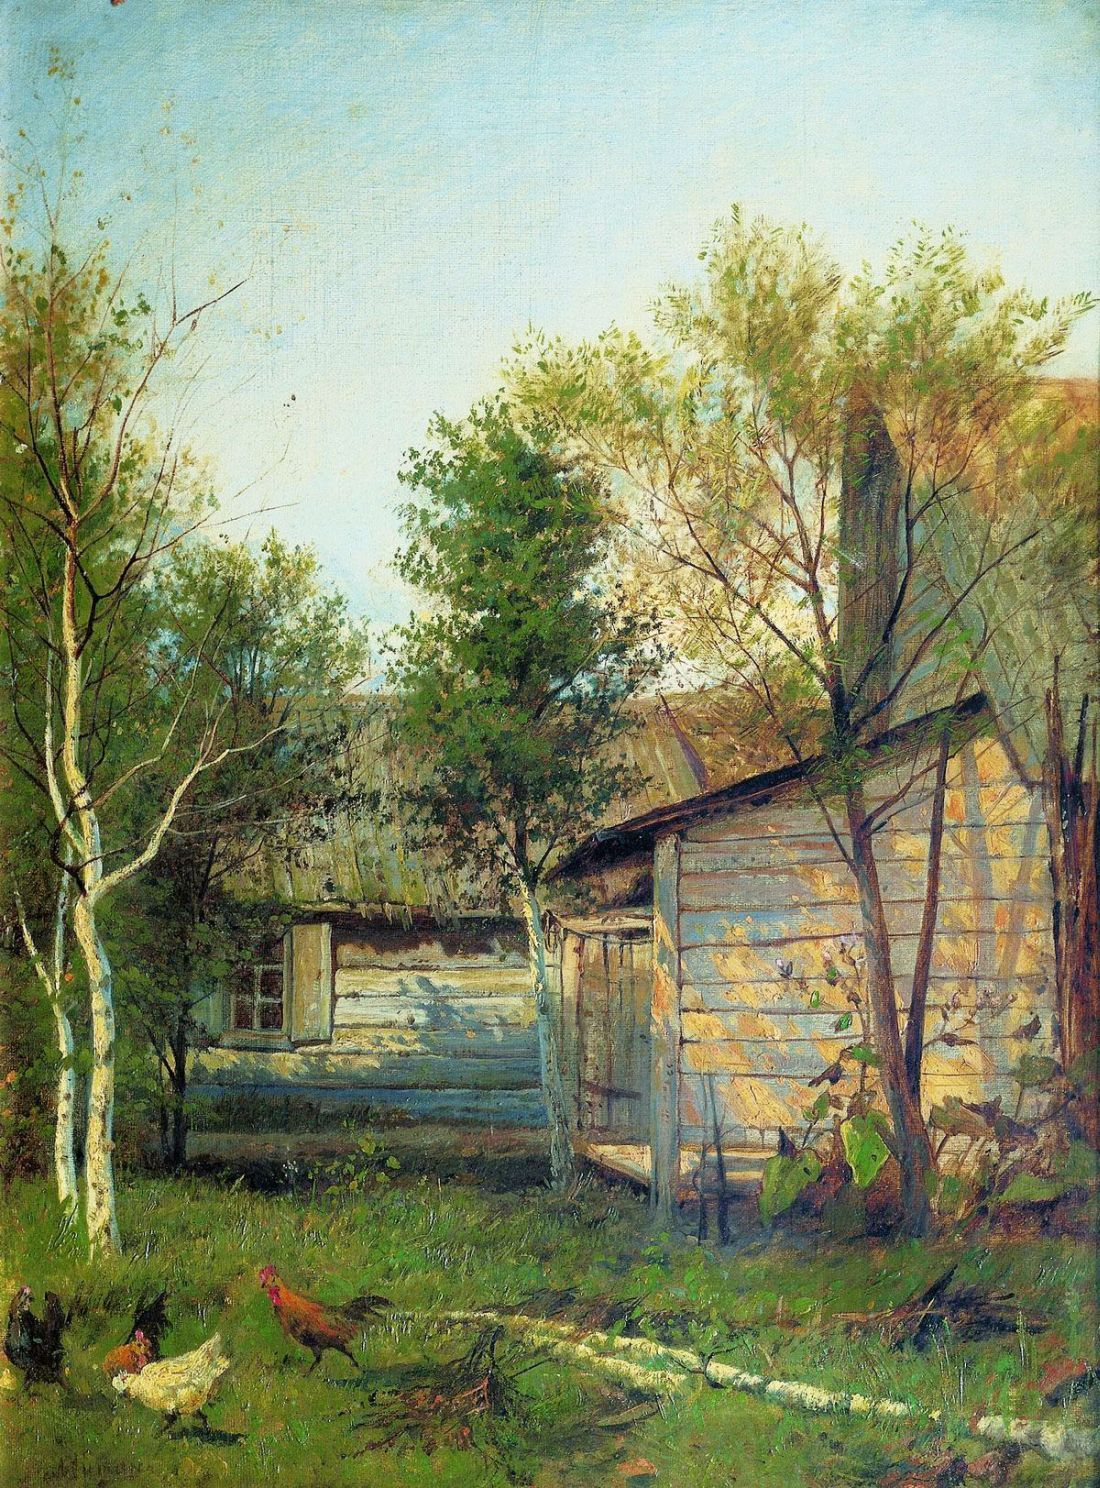 Sunny Day, Spring by Isaac Levitan